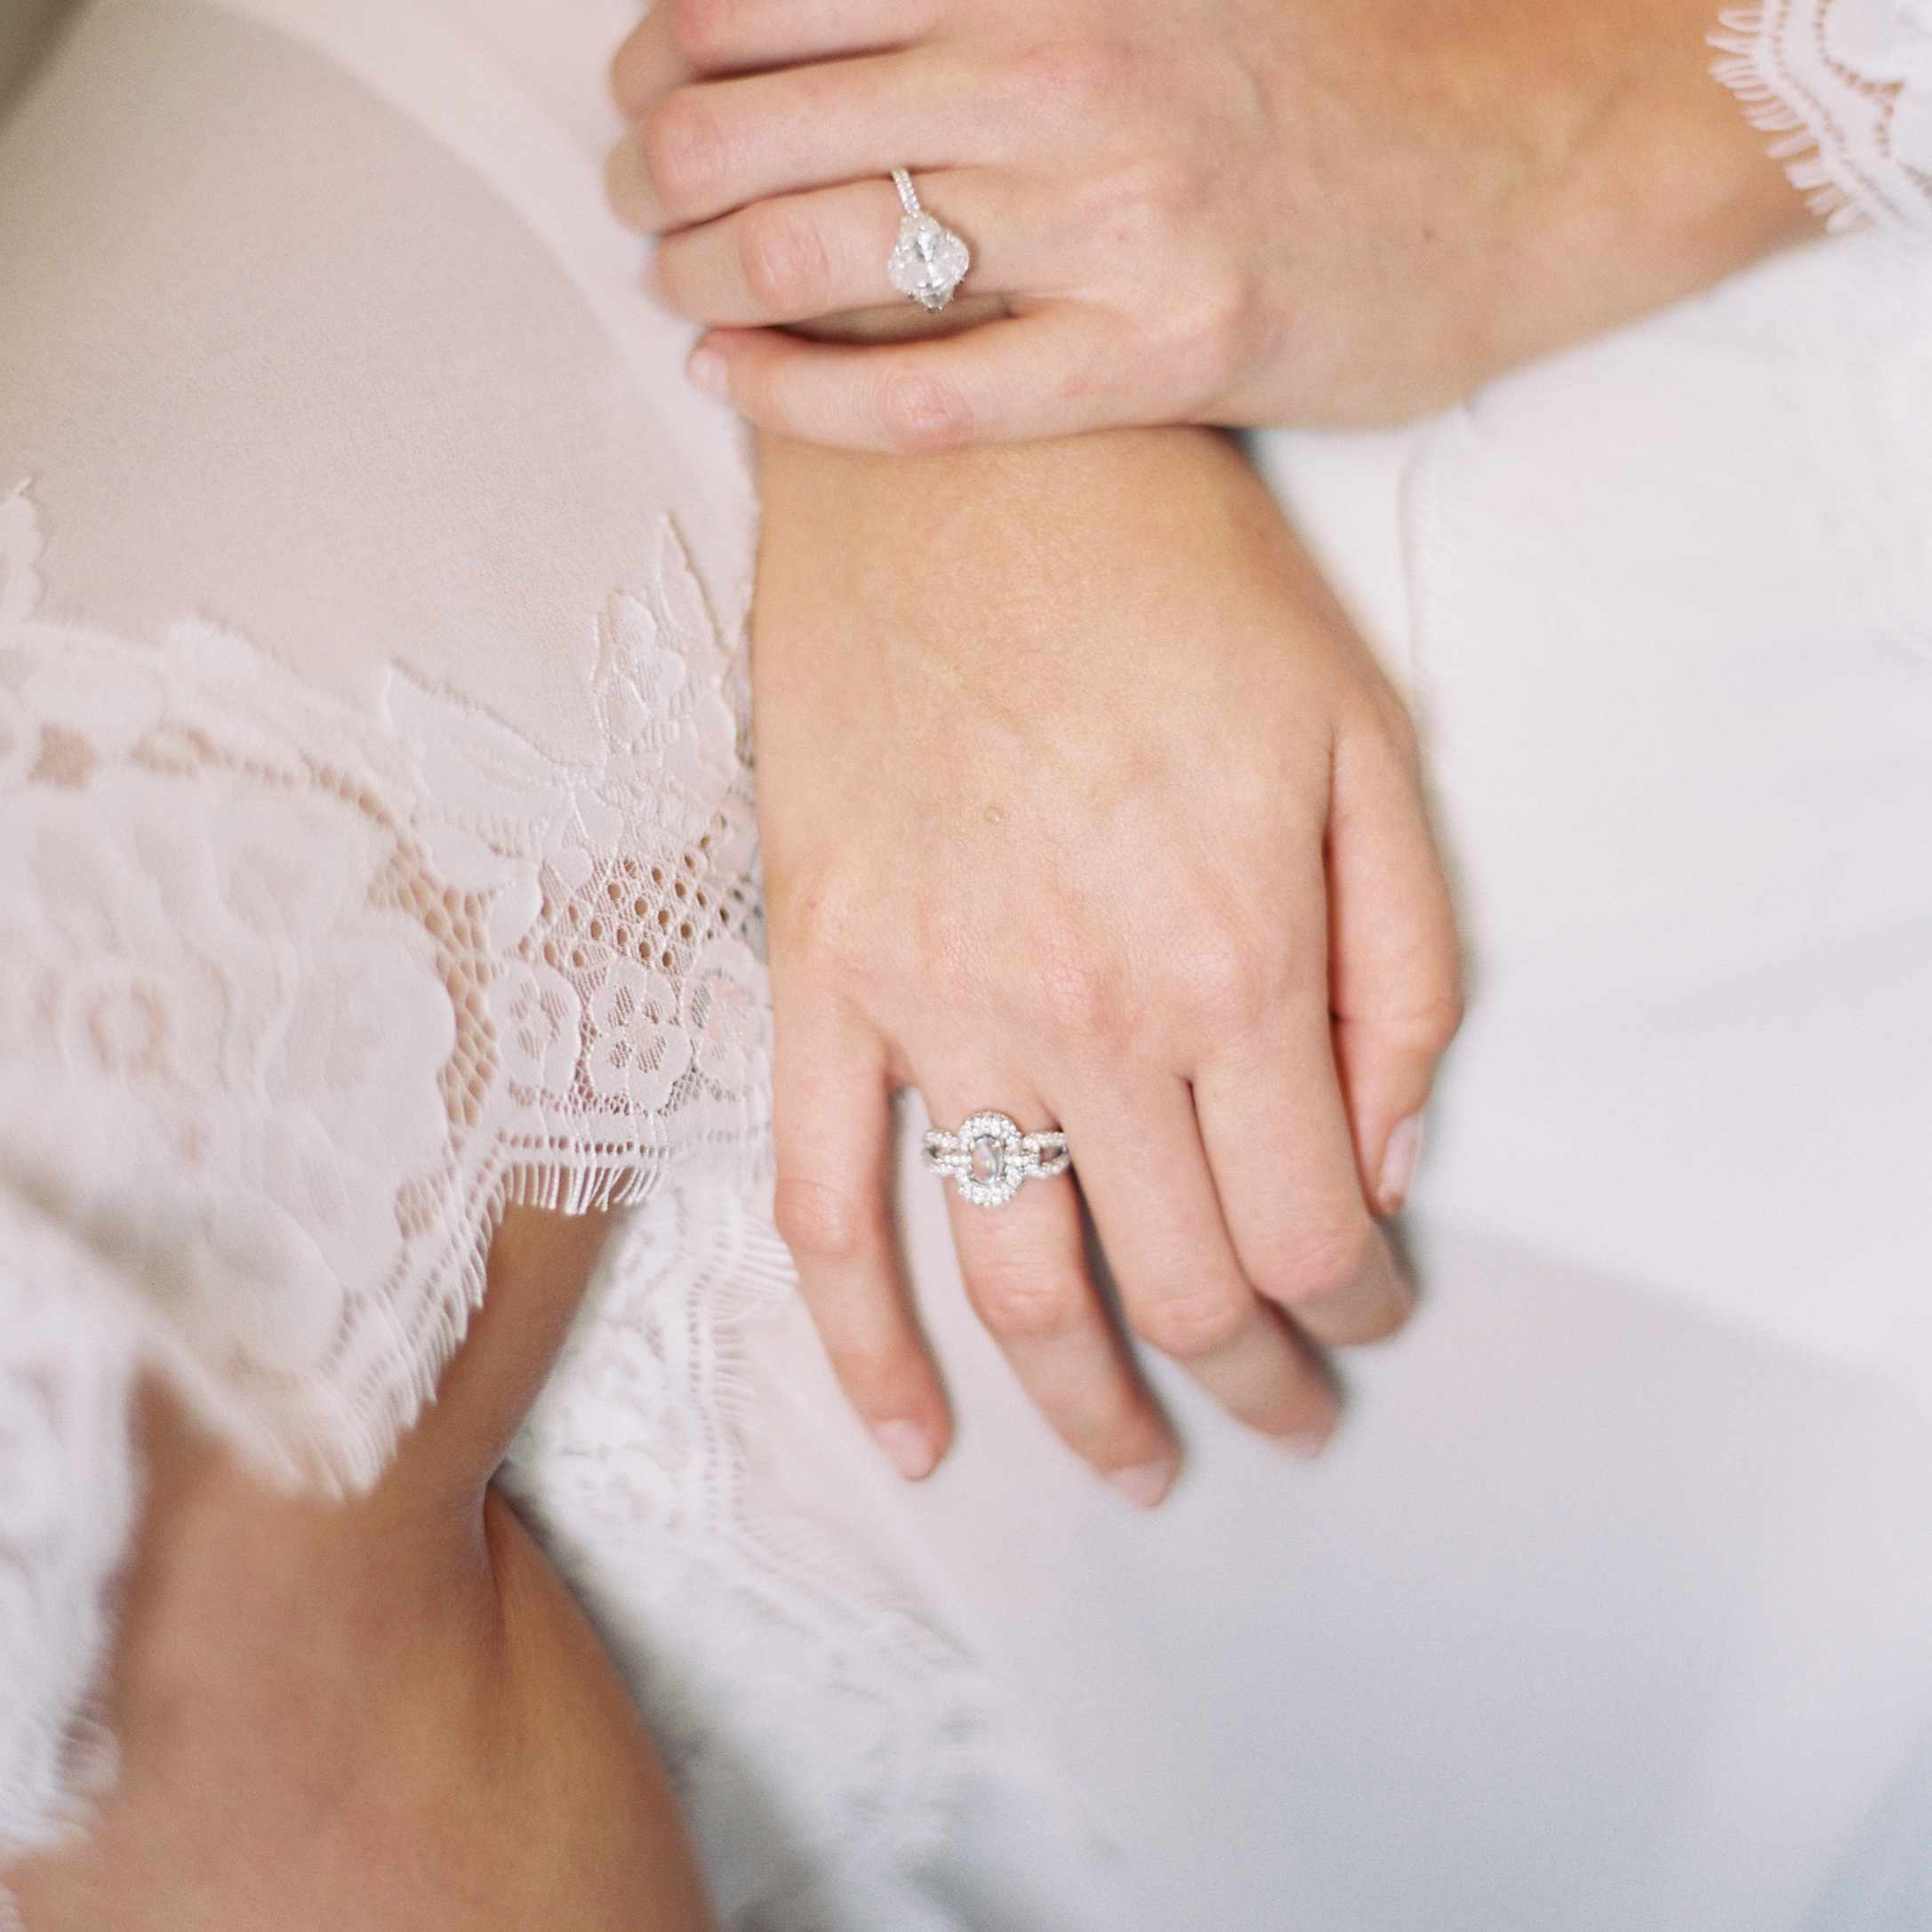 <p>Bride's hands with rings</p><br><br>